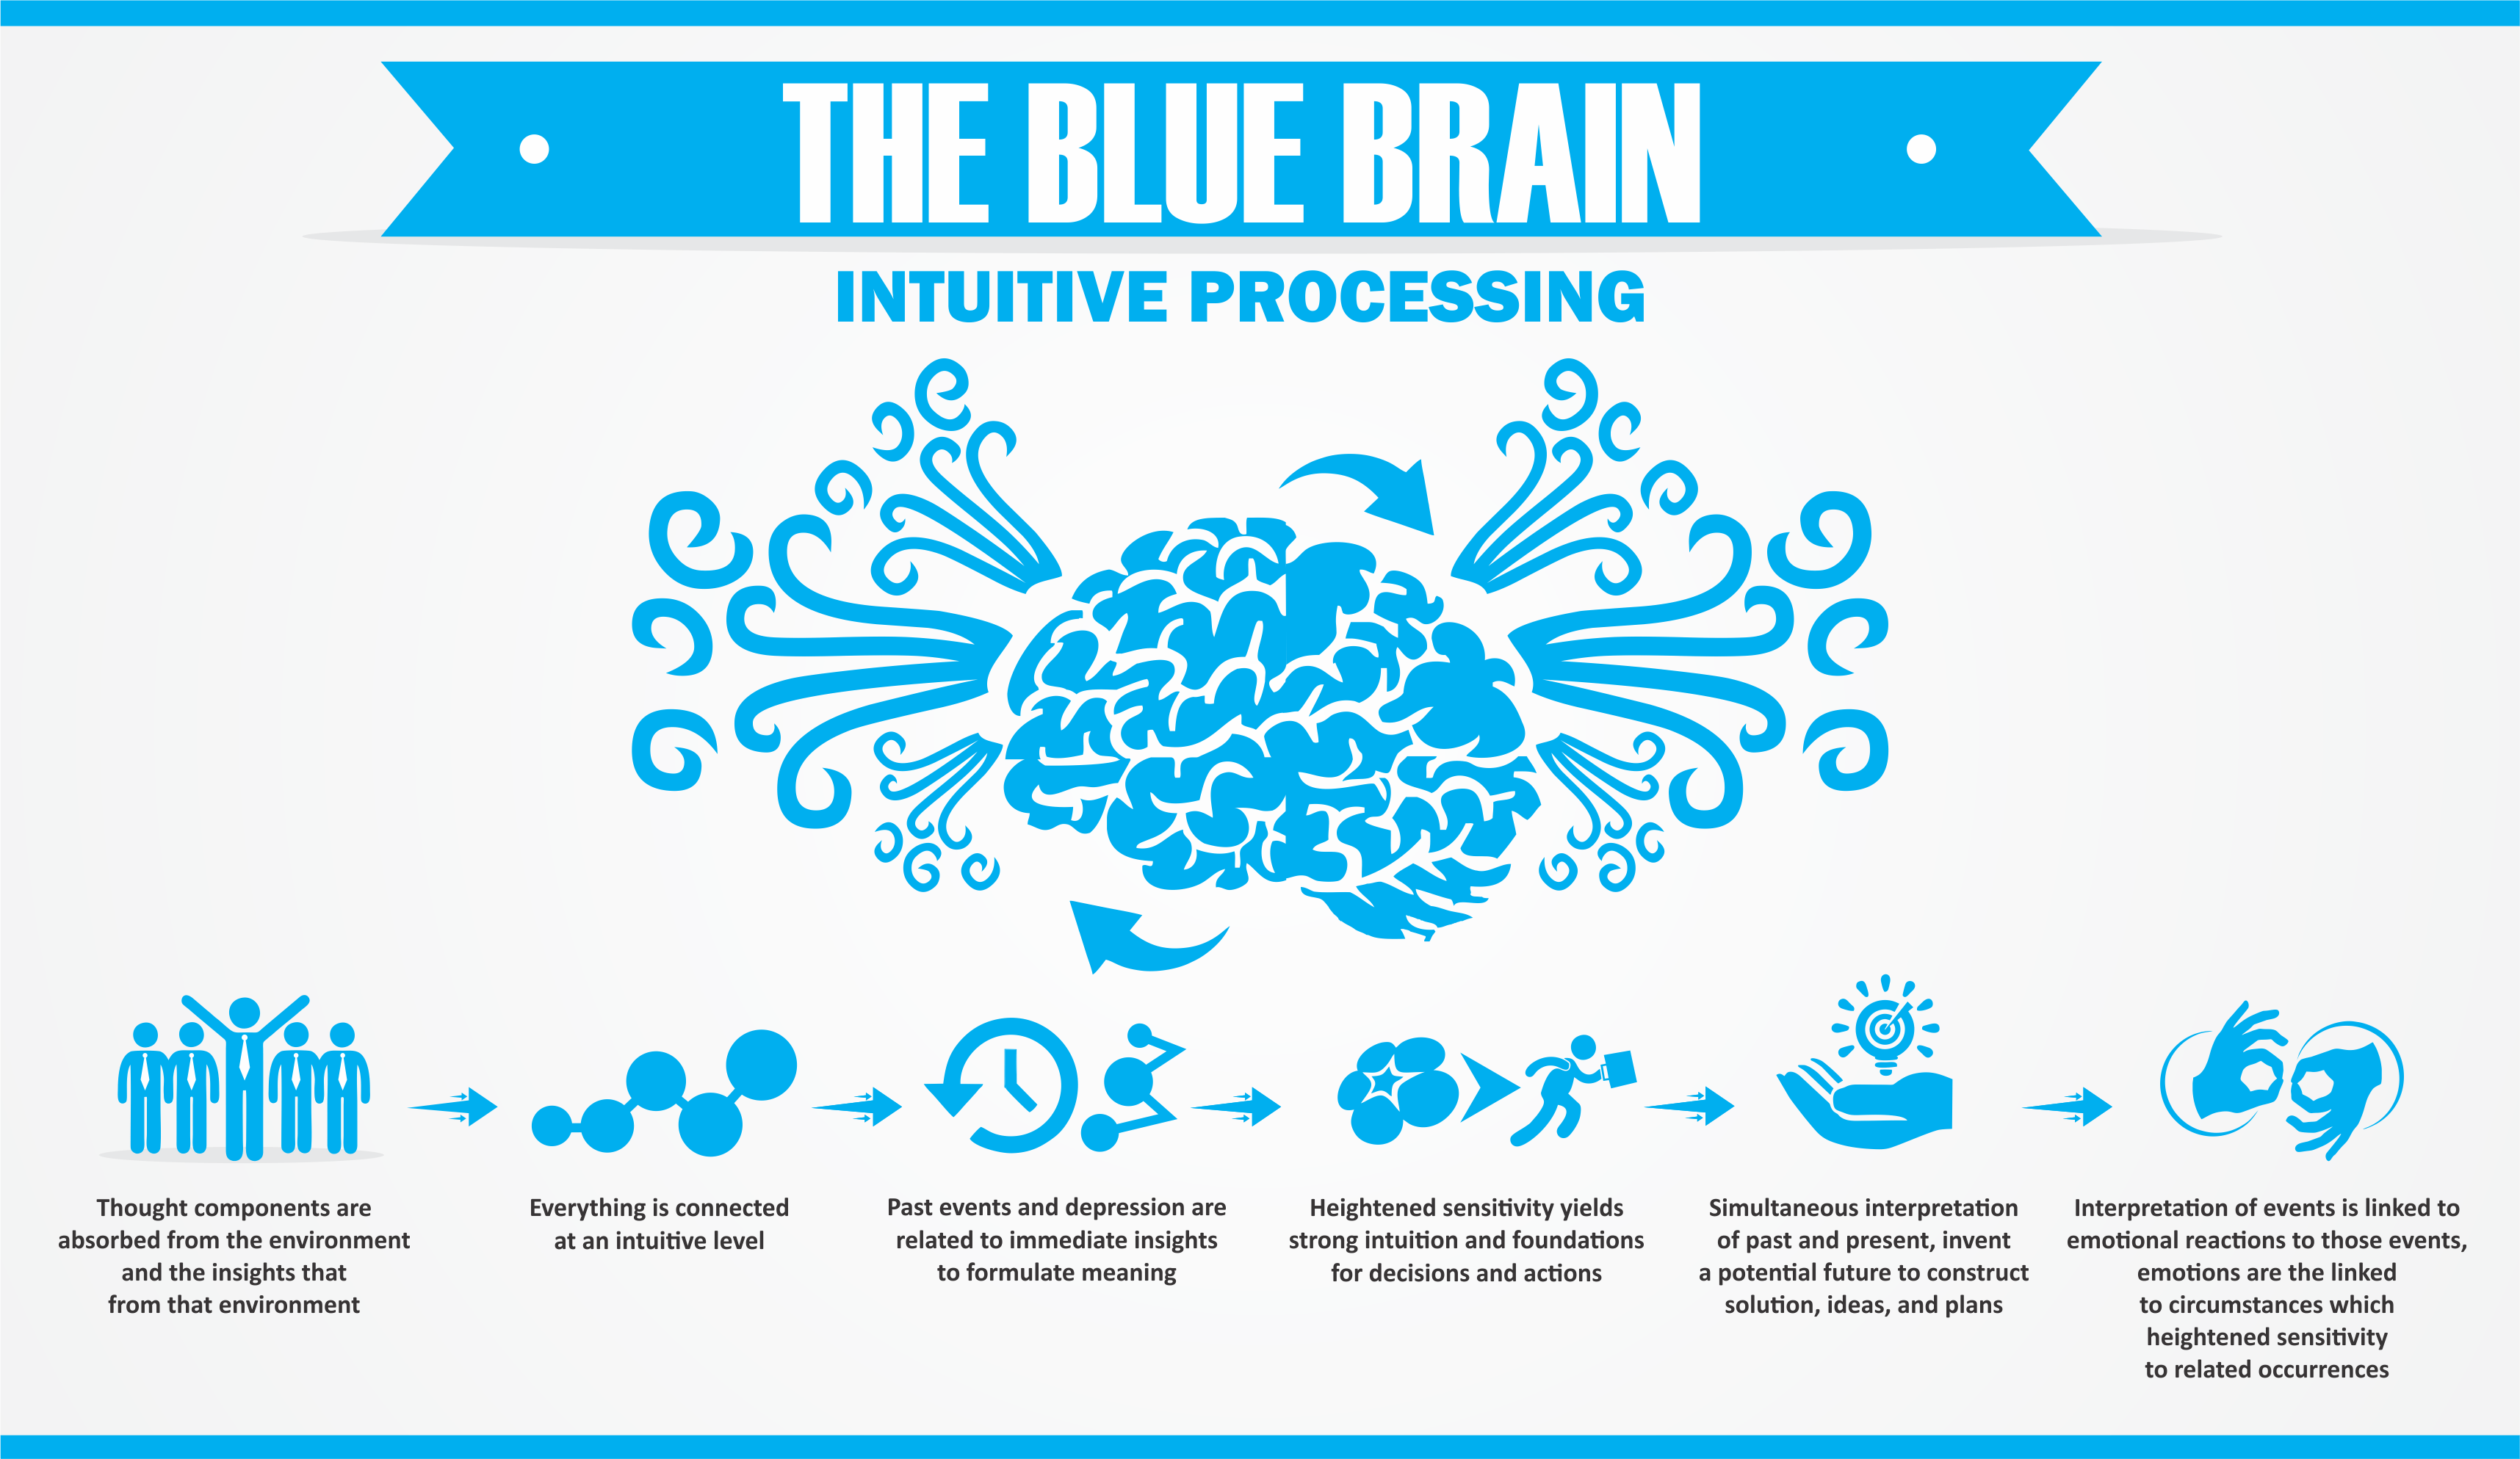 blue-brain intuitive brain process